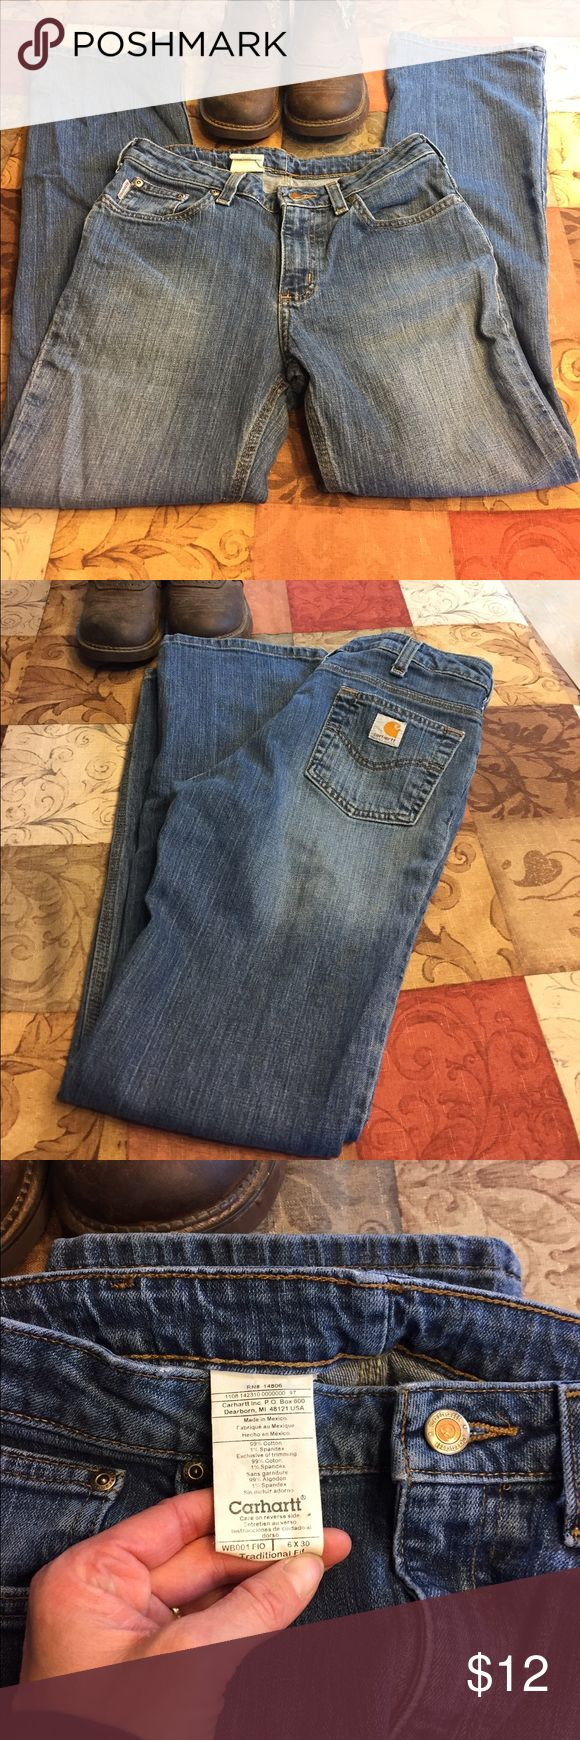 Jeans Carhart jeans worn a few times in good condition.  No rips stains or wear.  Thanks for checking out my closet! Carhartt Jeans Straight Leg